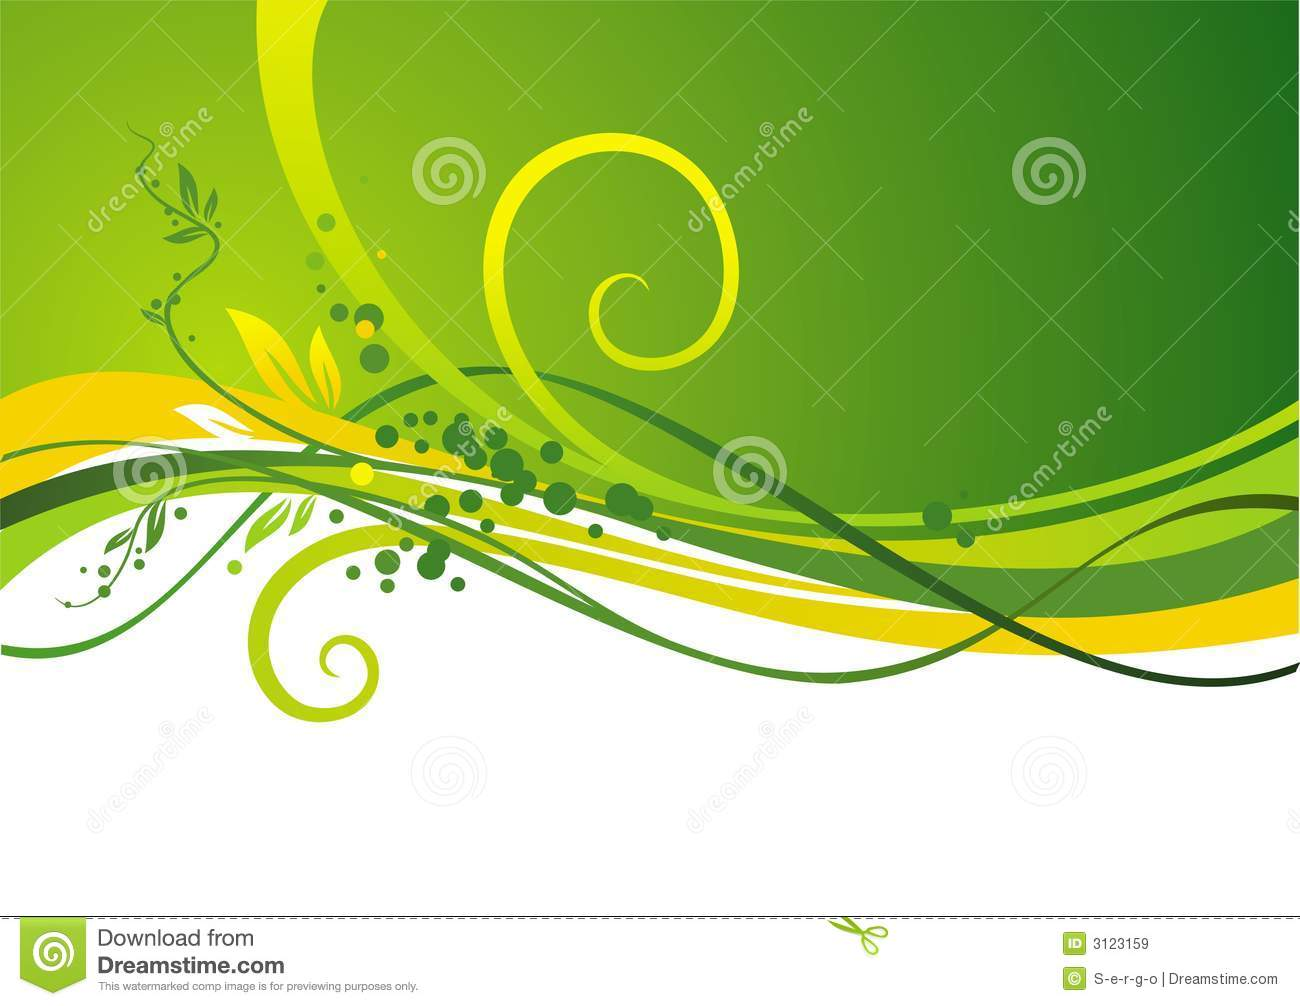 yellow green design royalty free stock images image 3123159